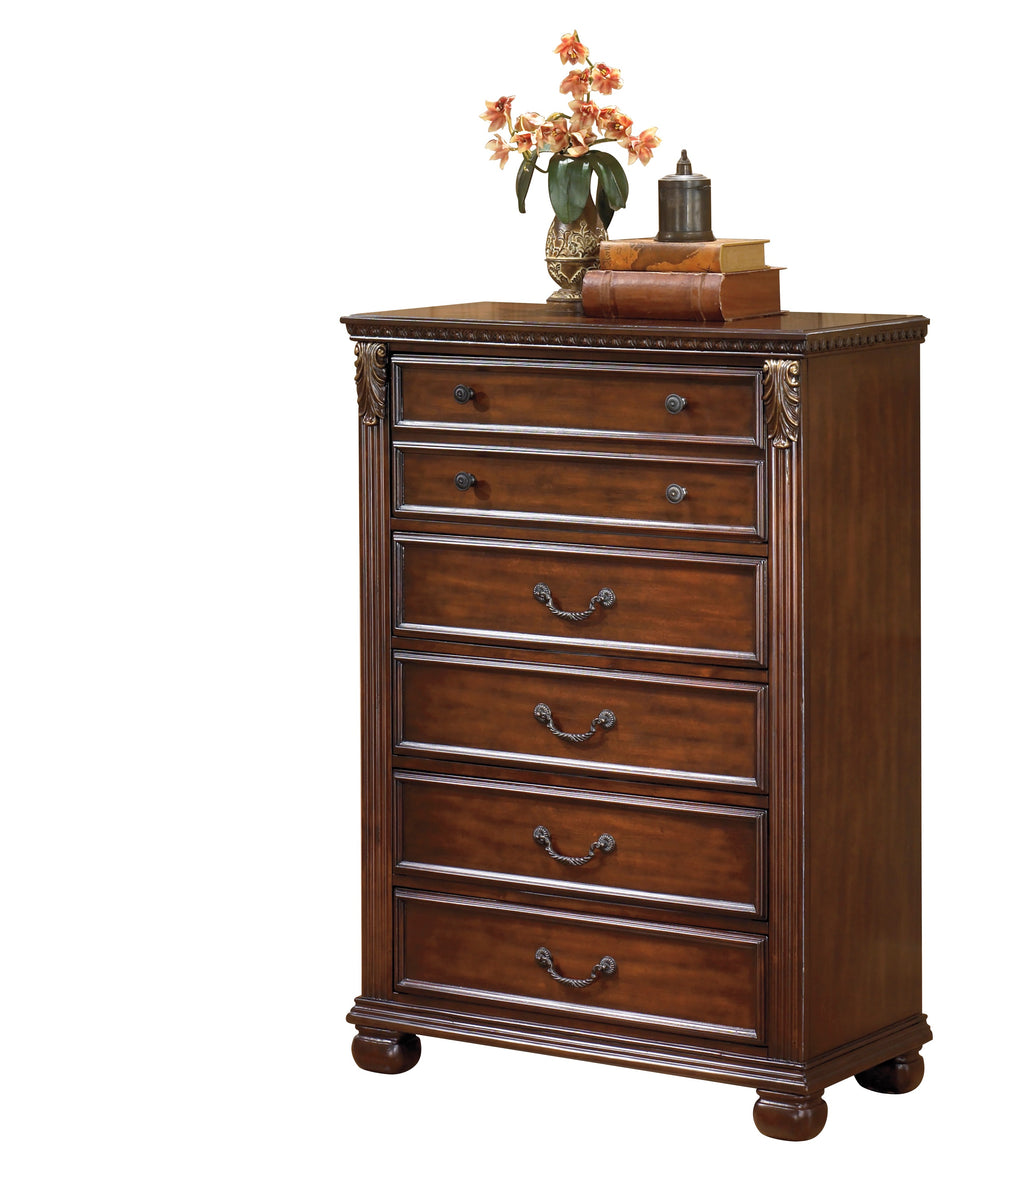 Ashley Leahlyn Five Drawer Chest in Warm Brown - The Furniture Space.